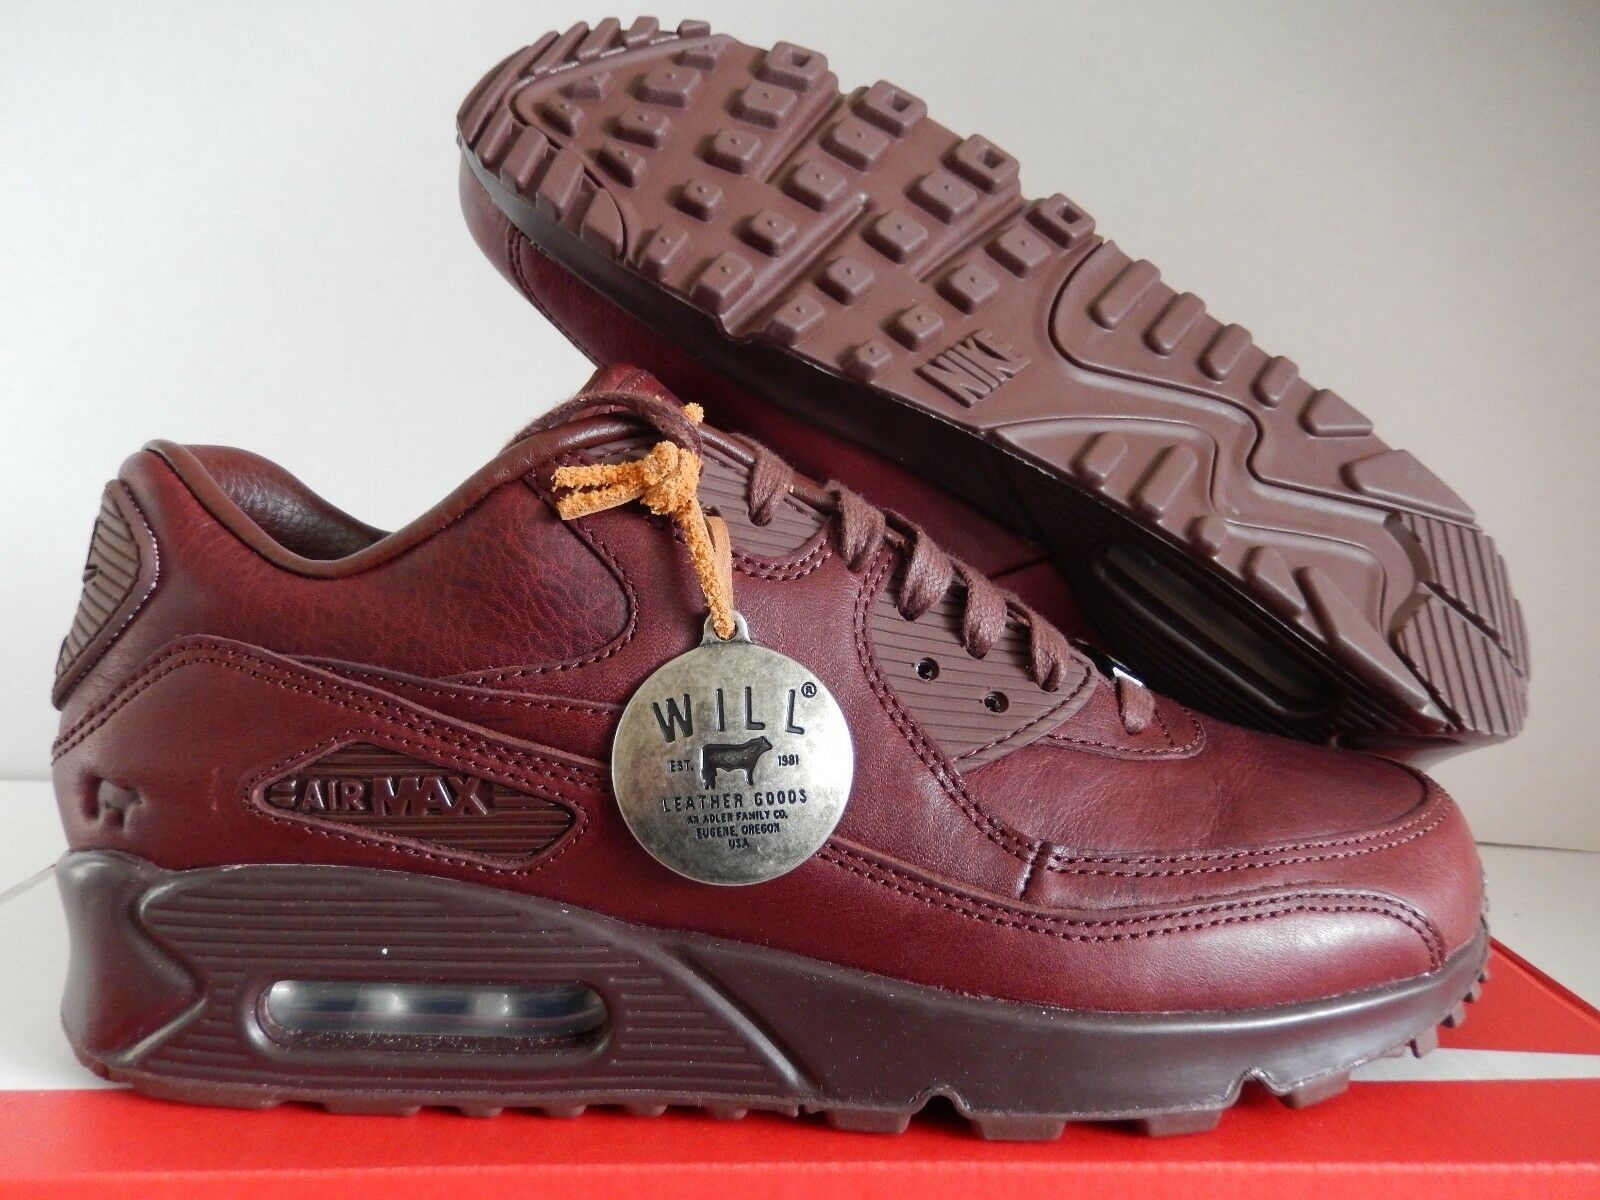 NIKE AIR MAX 90 ID WILL PREMIUM LEATHER RED SZ 9 WOMENS MENS SZ 7.5 [921310 991]